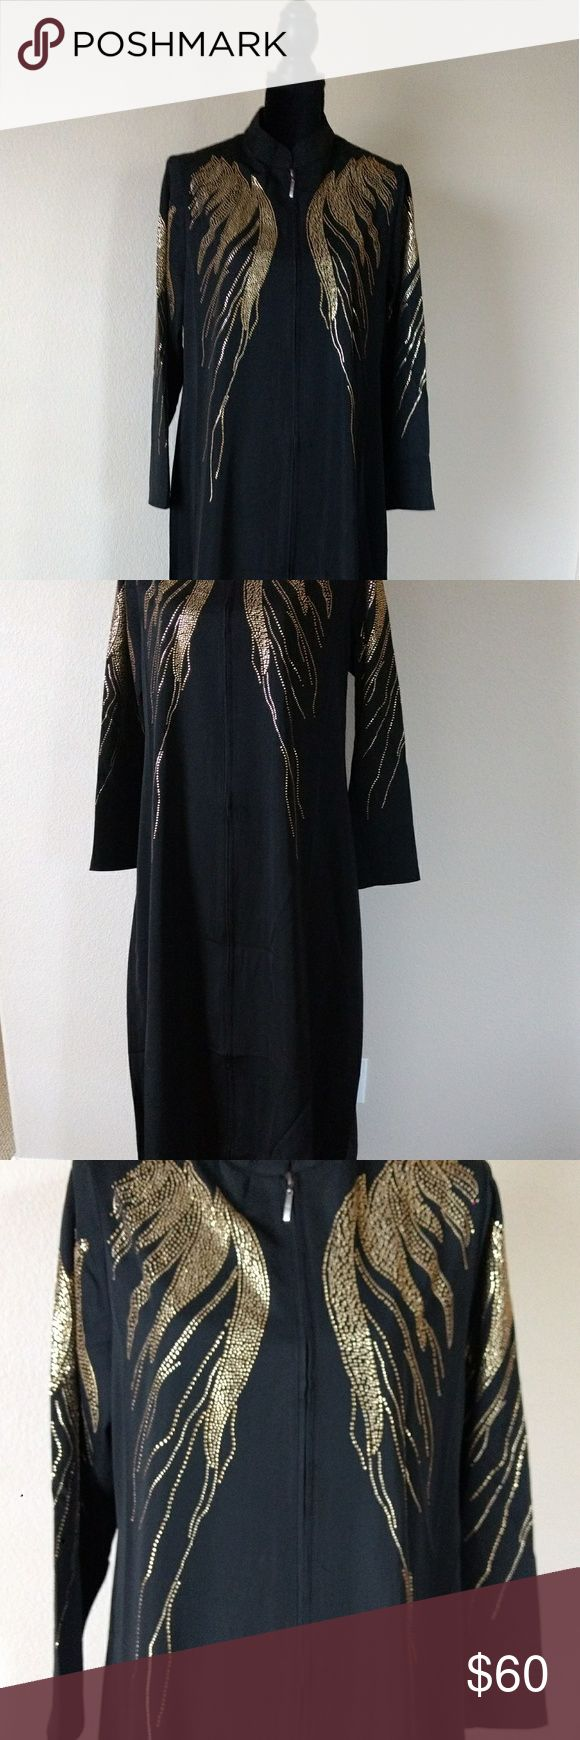 Abaya Brand New Abaya  Color: Black with gold beading, with zipper in front. Size: XLarge,  Material: Polyester Made in Turkey unbranded Other